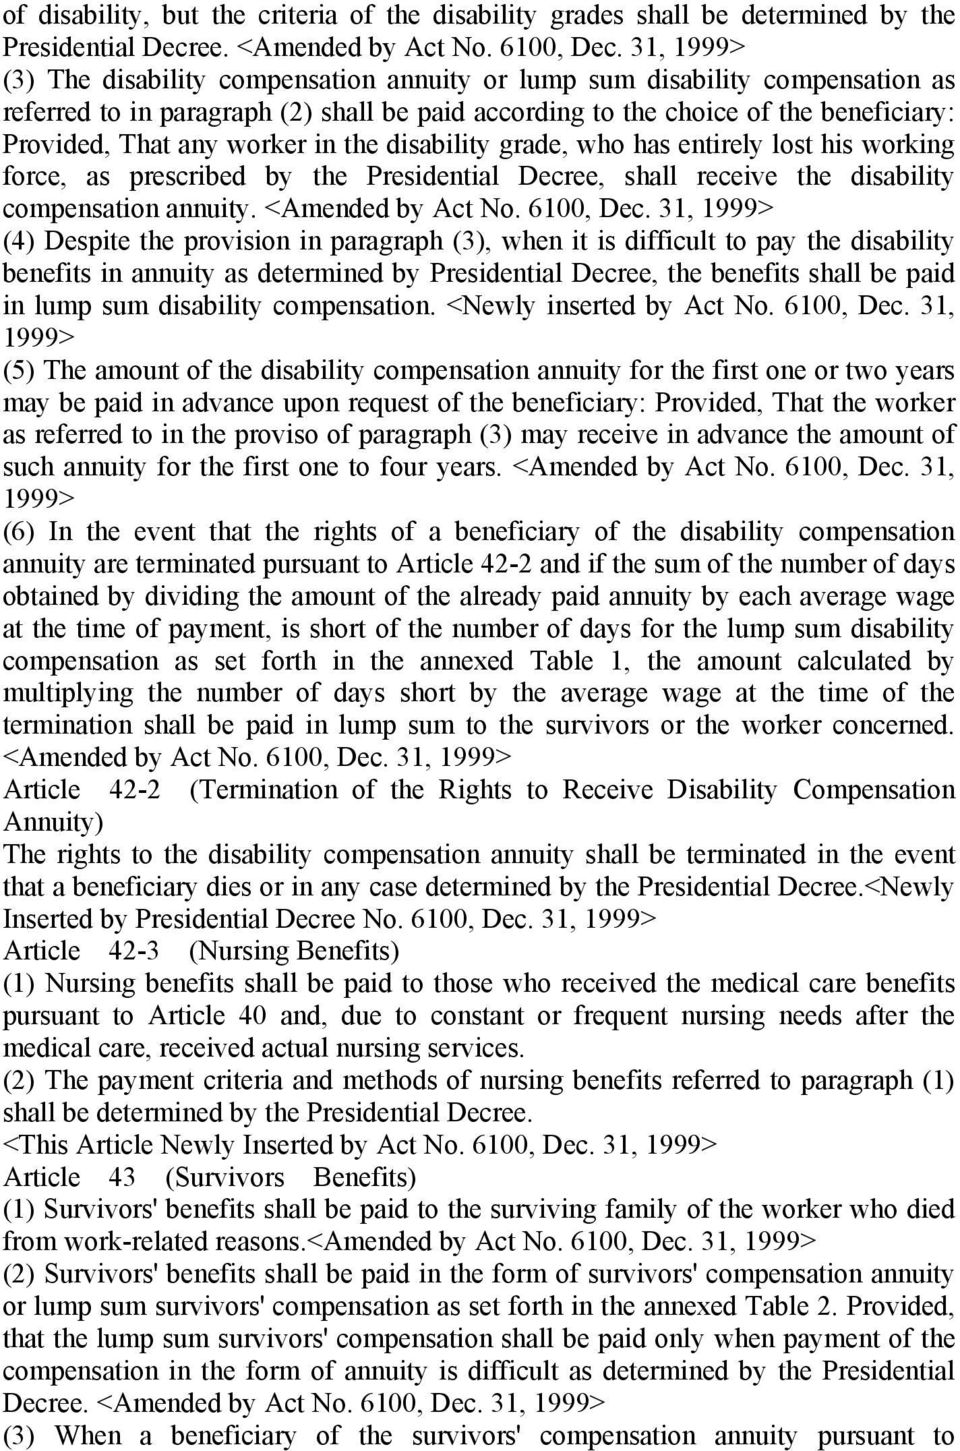 worker in the disability grade, who has entirely lost his working force, as prescribed by the Presidential Decree, shall receive the disability compensation annuity. <Amended by Act No. 6100, Dec.